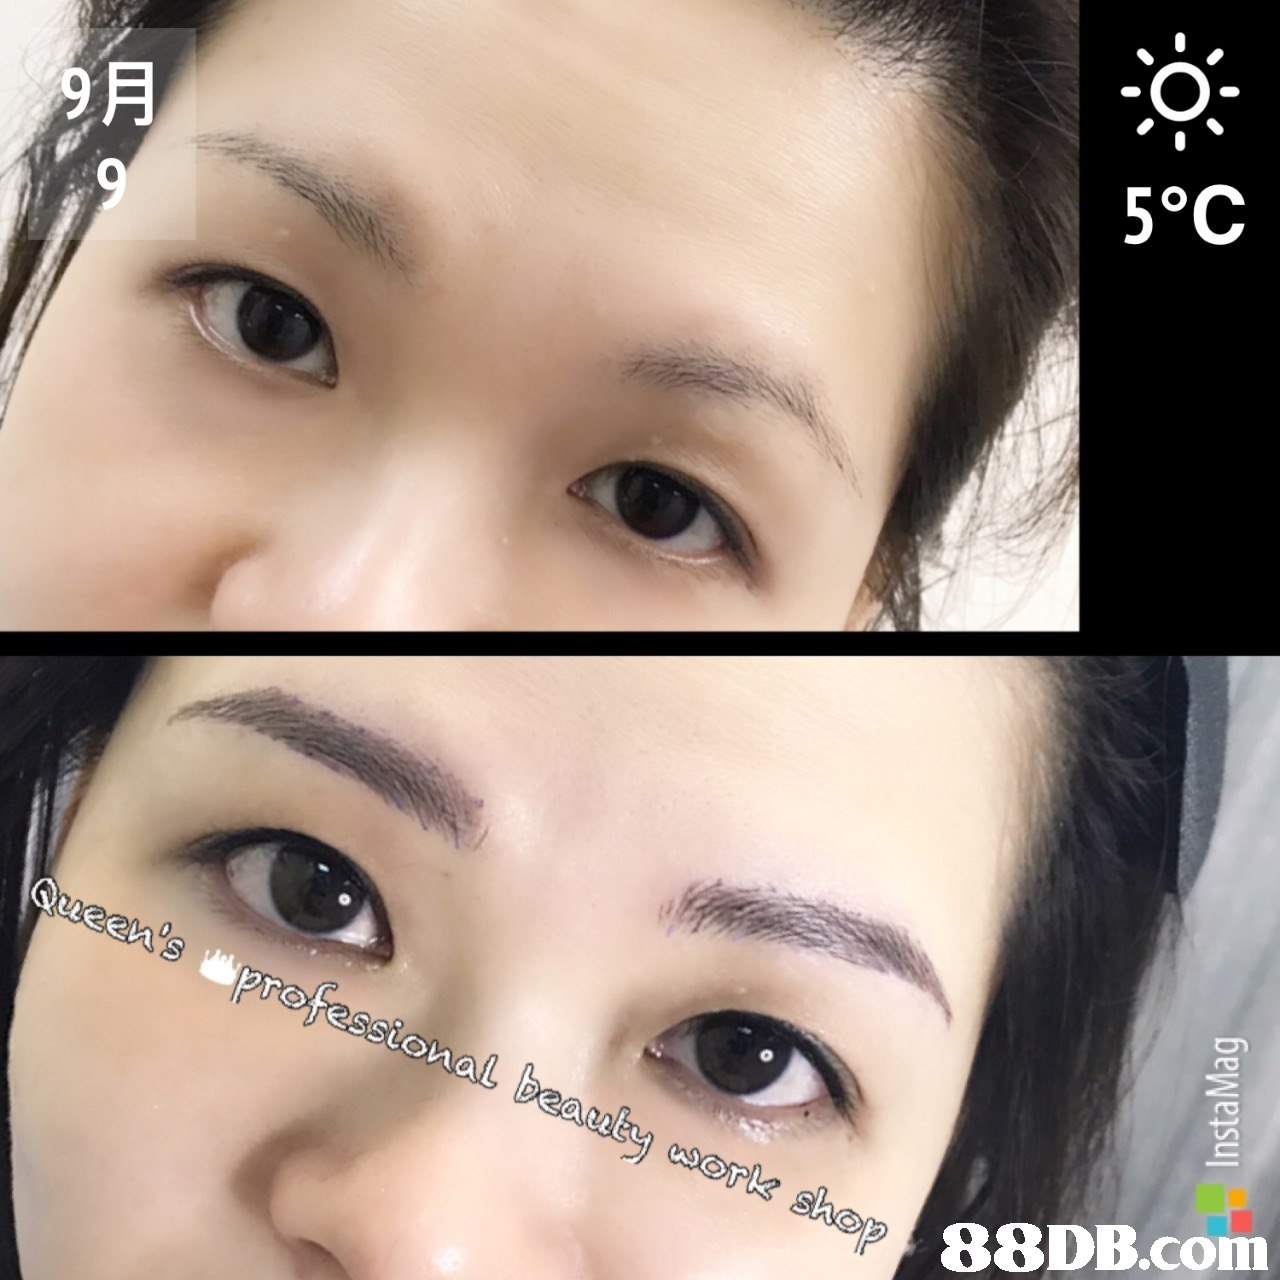 5°C   eyebrow,eyelash,forehead,nose,chin